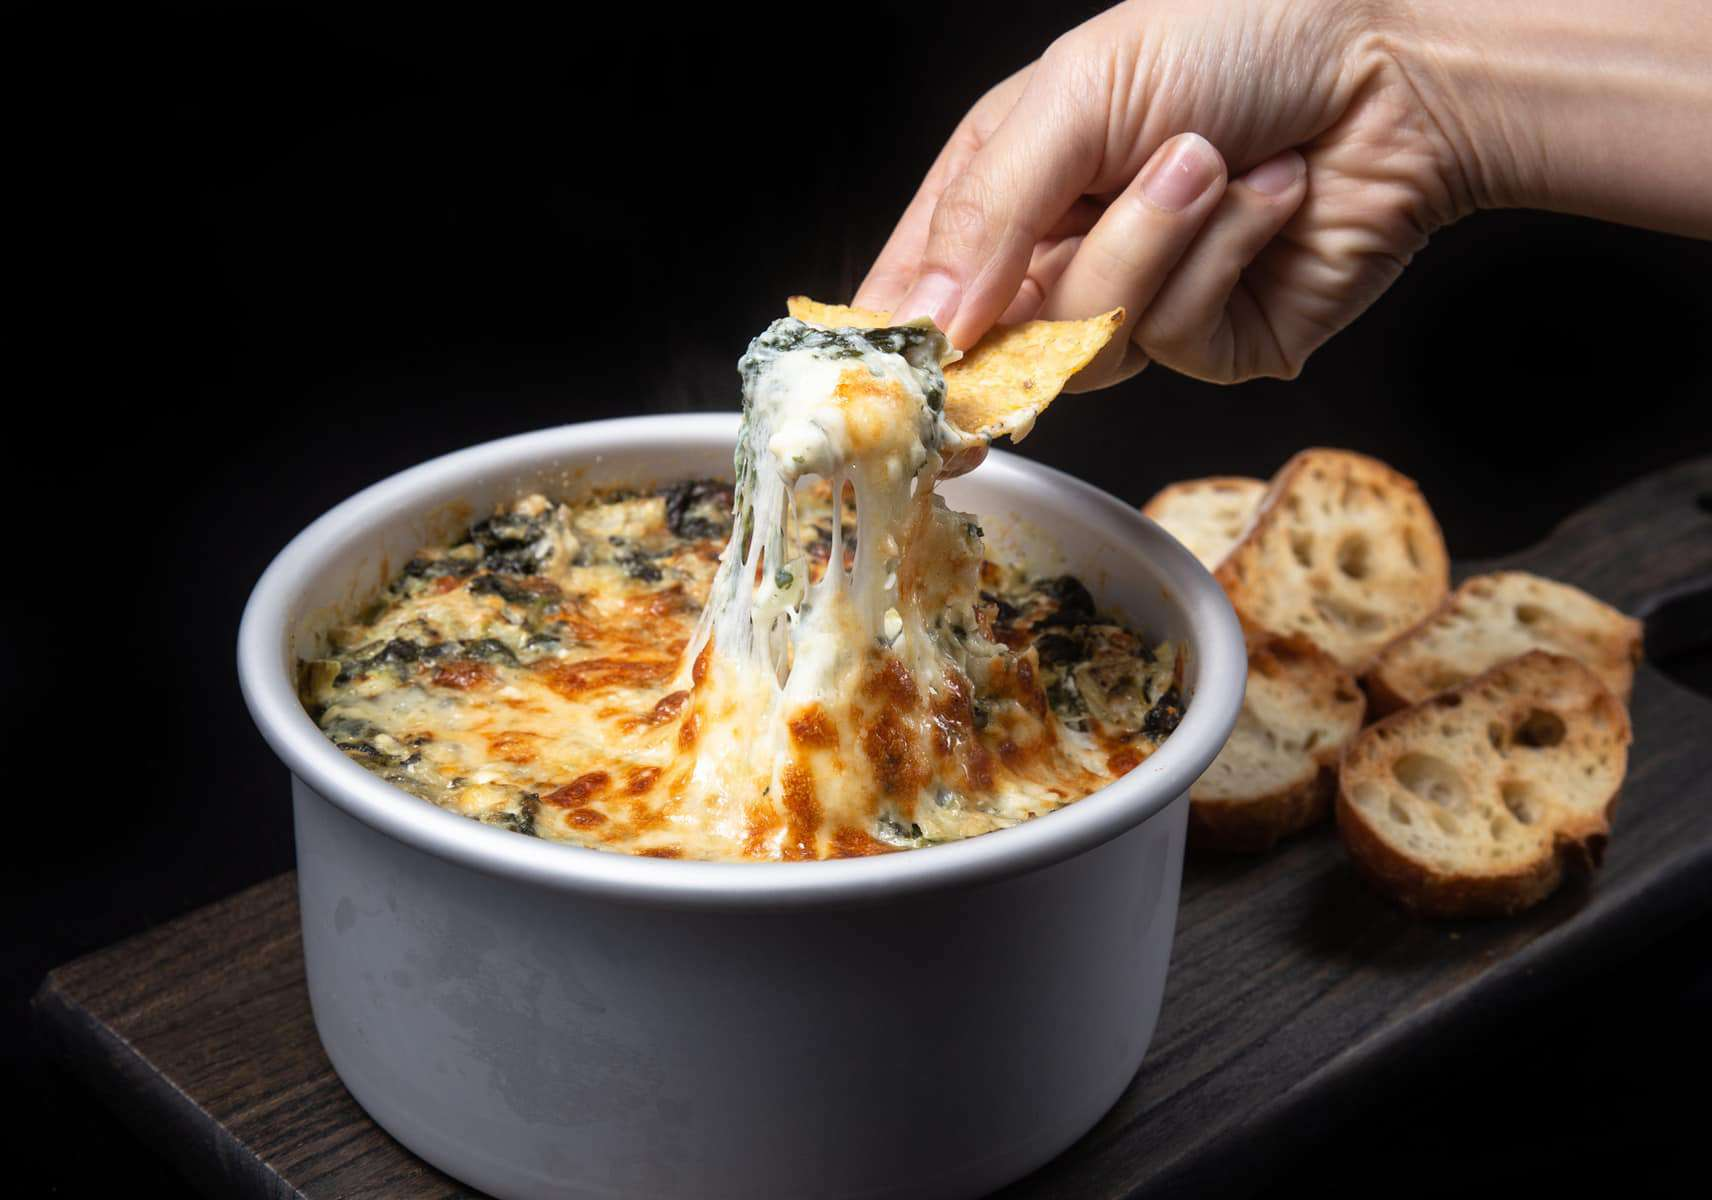 instant pot spinach artichoke dip | spinach artichoke dip instant pot | pressure cooker spinach artichoke dip | air fryer spinach artichoke dip | instant pot artichoke spinach dip | best spinach artichoke dip | easy spinach artichoke dip | party recipes | appetizer recipes #AmyJacky #InstantPot #PressureCooker #recipes #christmas #thanksgiving #superbowl